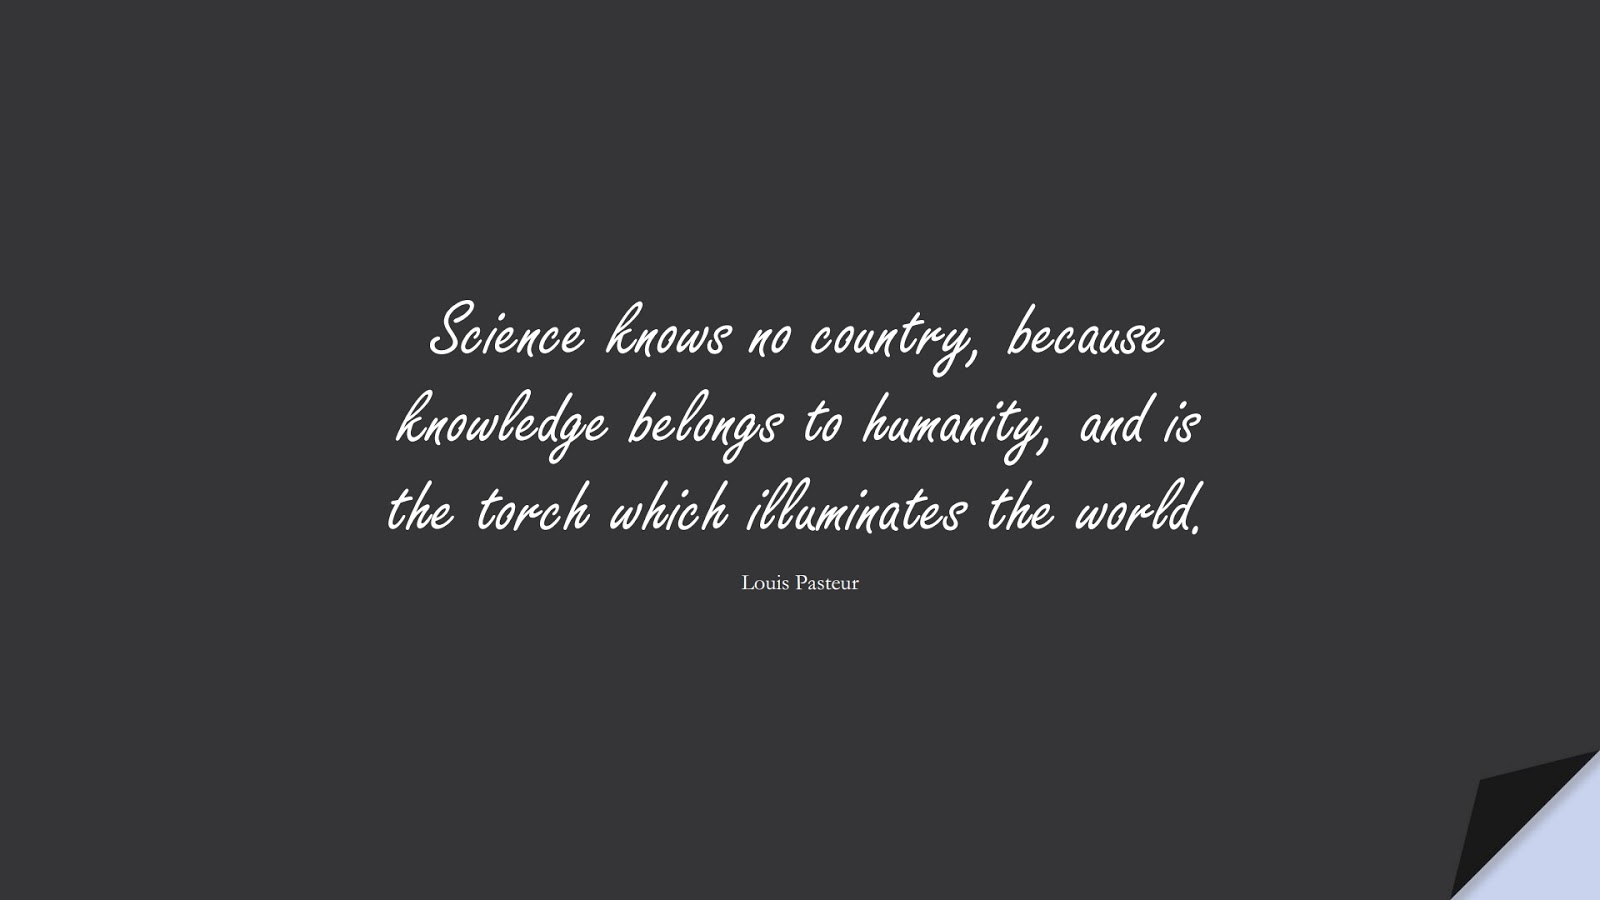 Science knows no country, because knowledge belongs to humanity, and is the torch which illuminates the world. (Louis Pasteur);  #HumanityQuotes